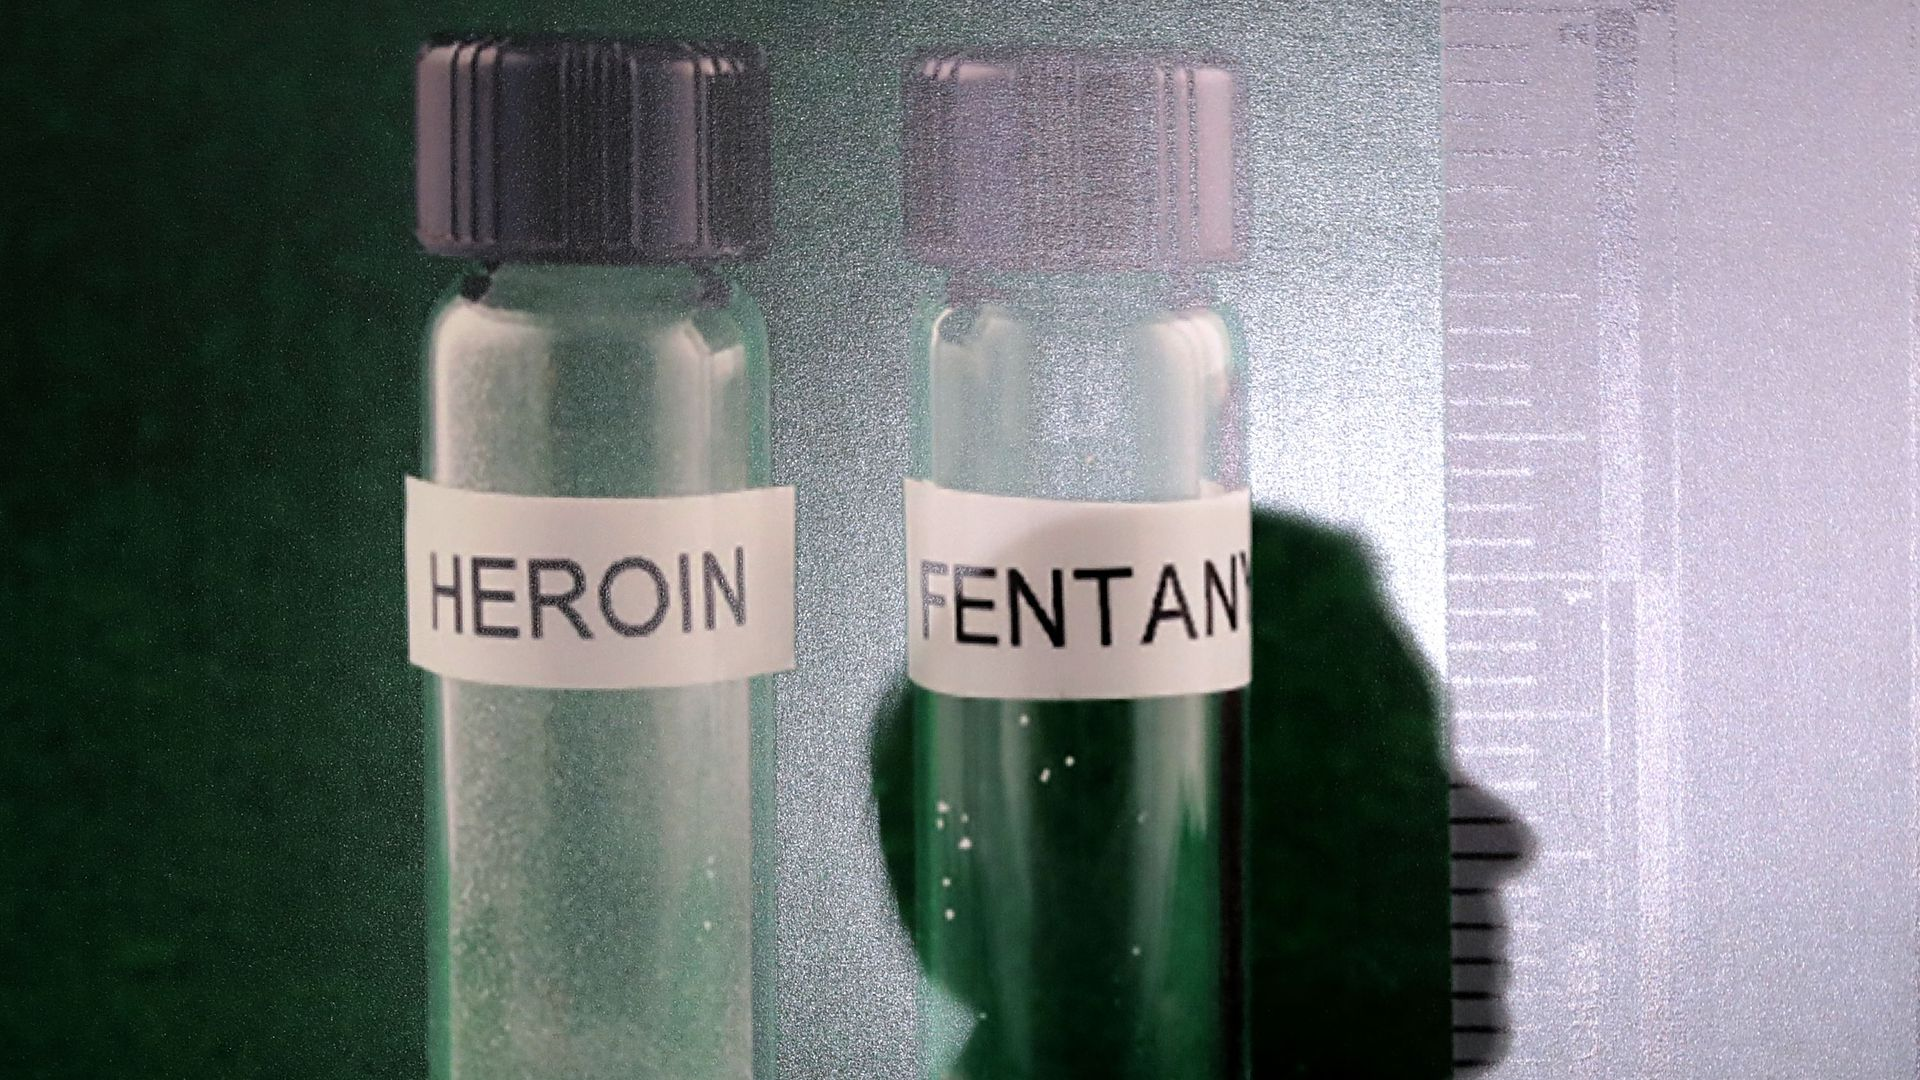 Vials of Heroin and Fentanyl